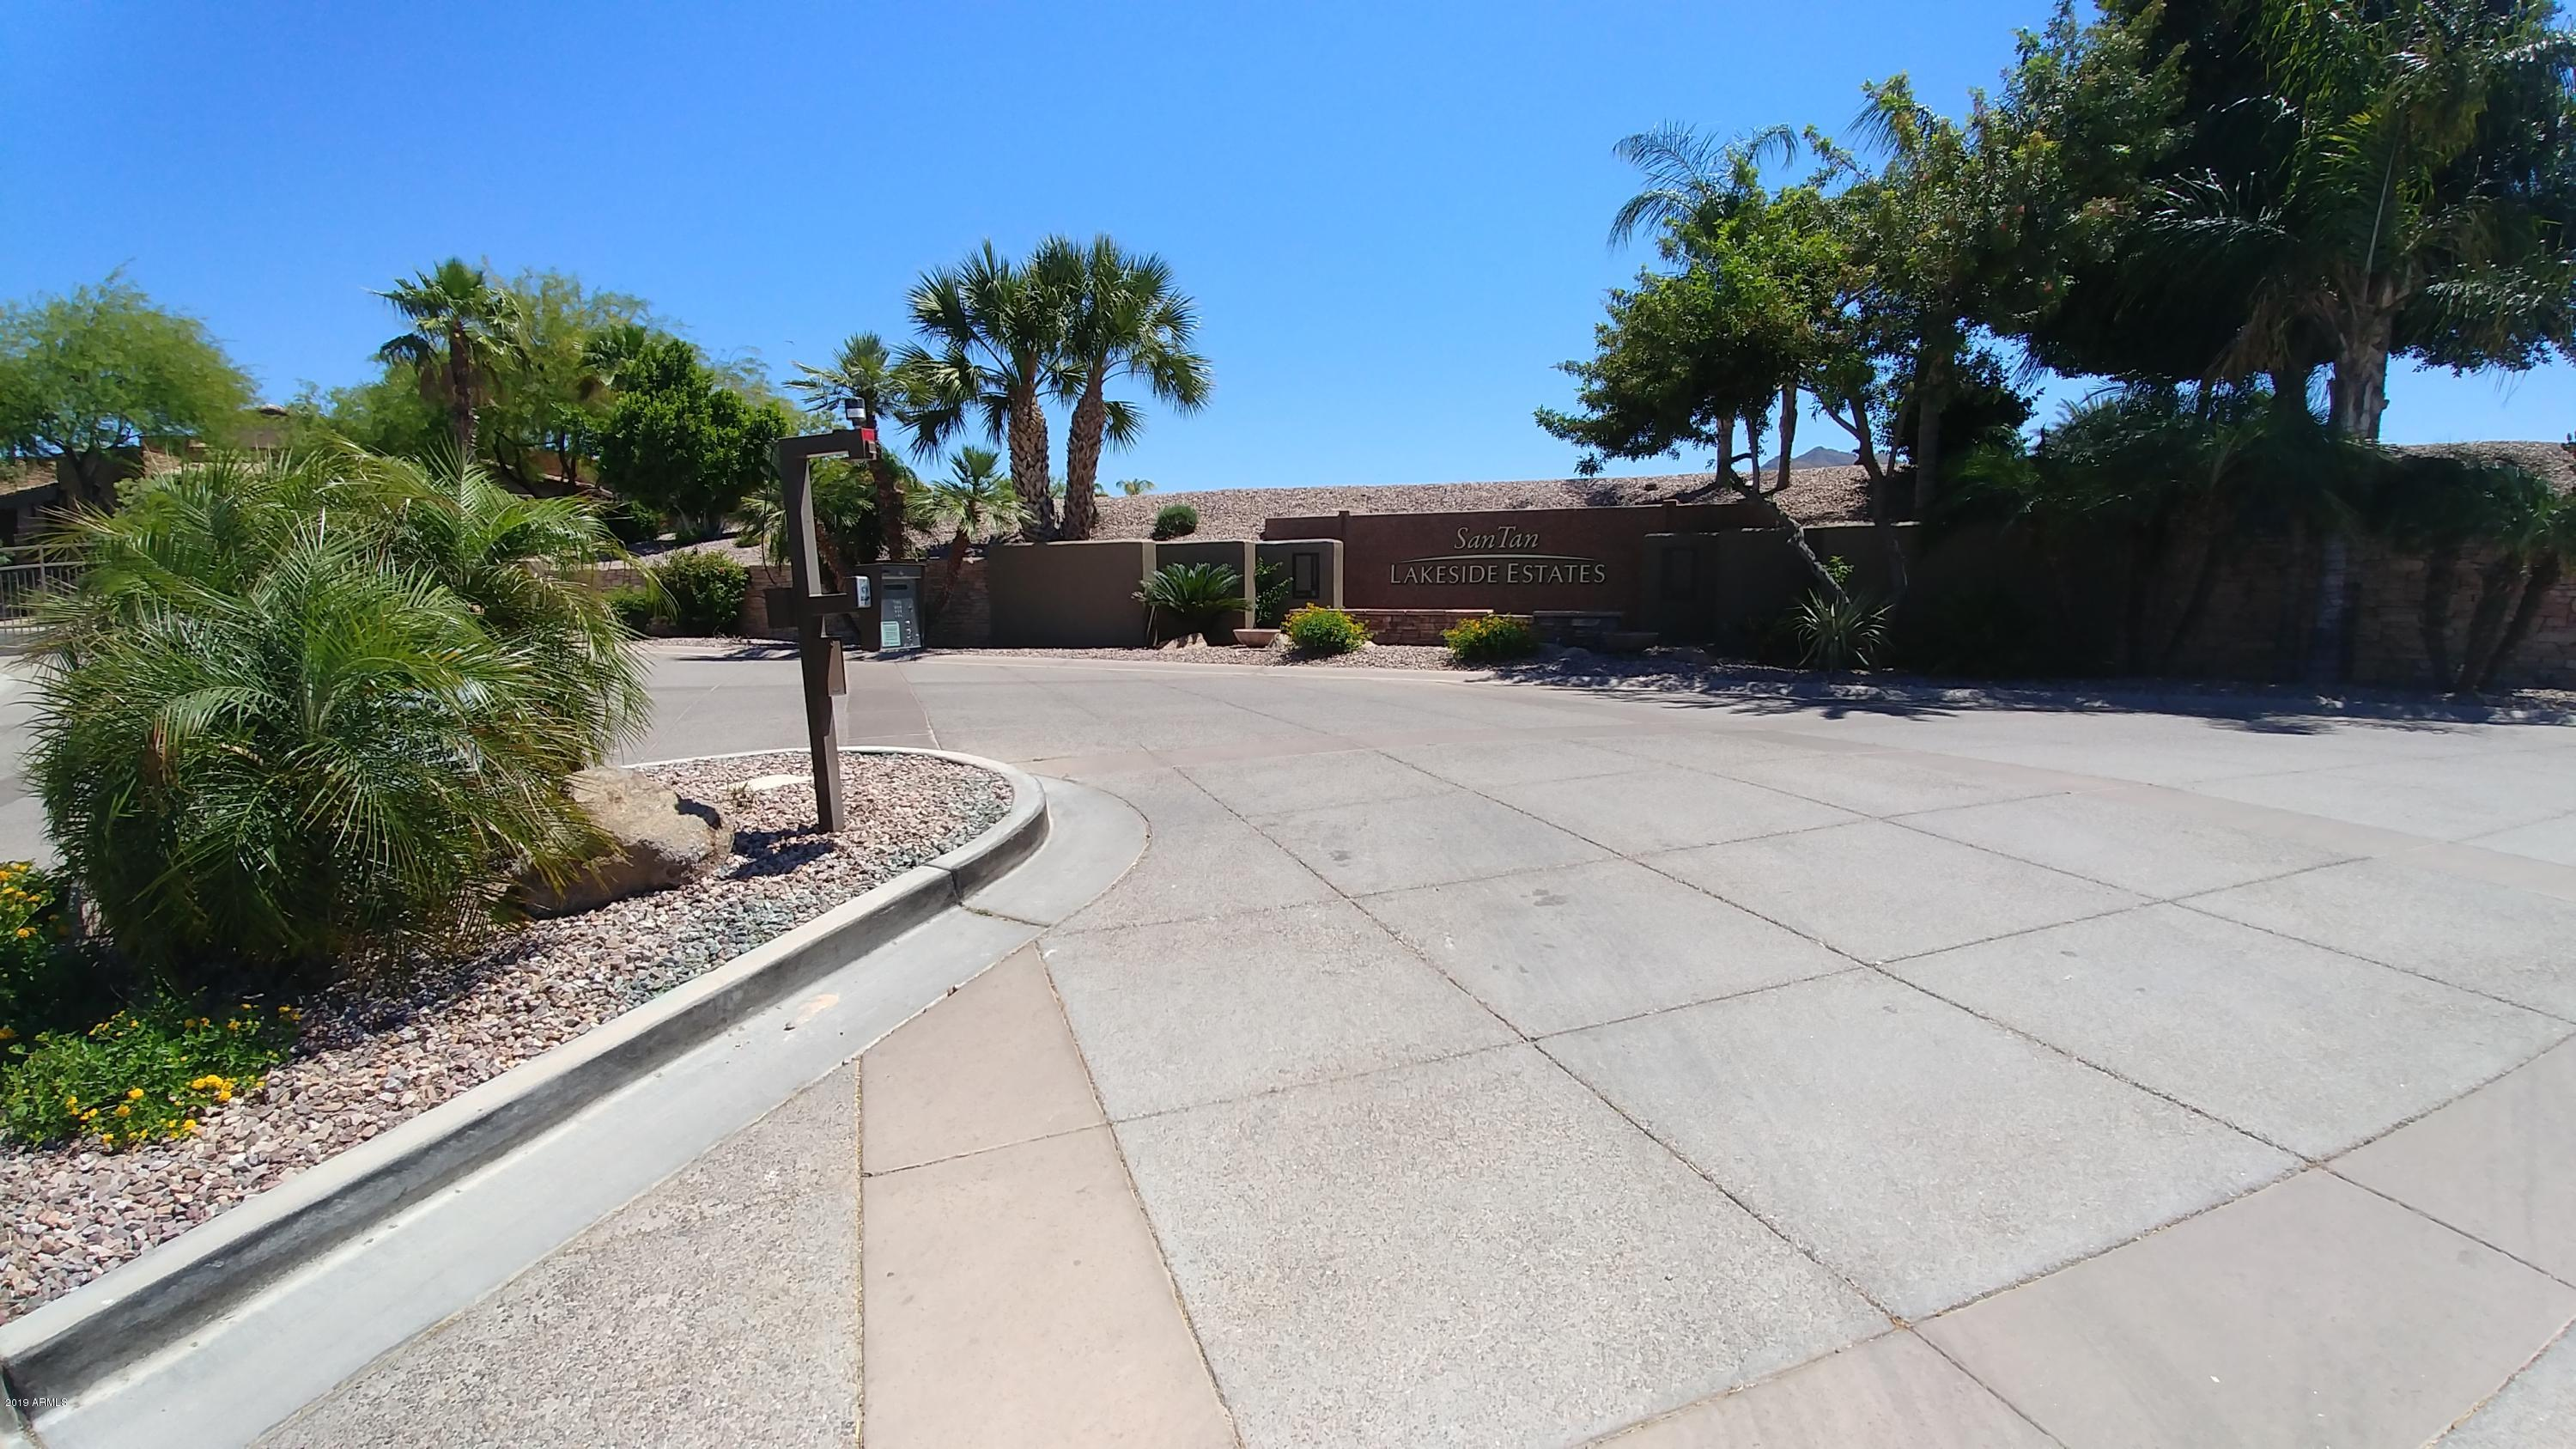 MLS 5924944 7462 S MCCORMICK Way, Queen Creek, AZ 85142 Queen Creek